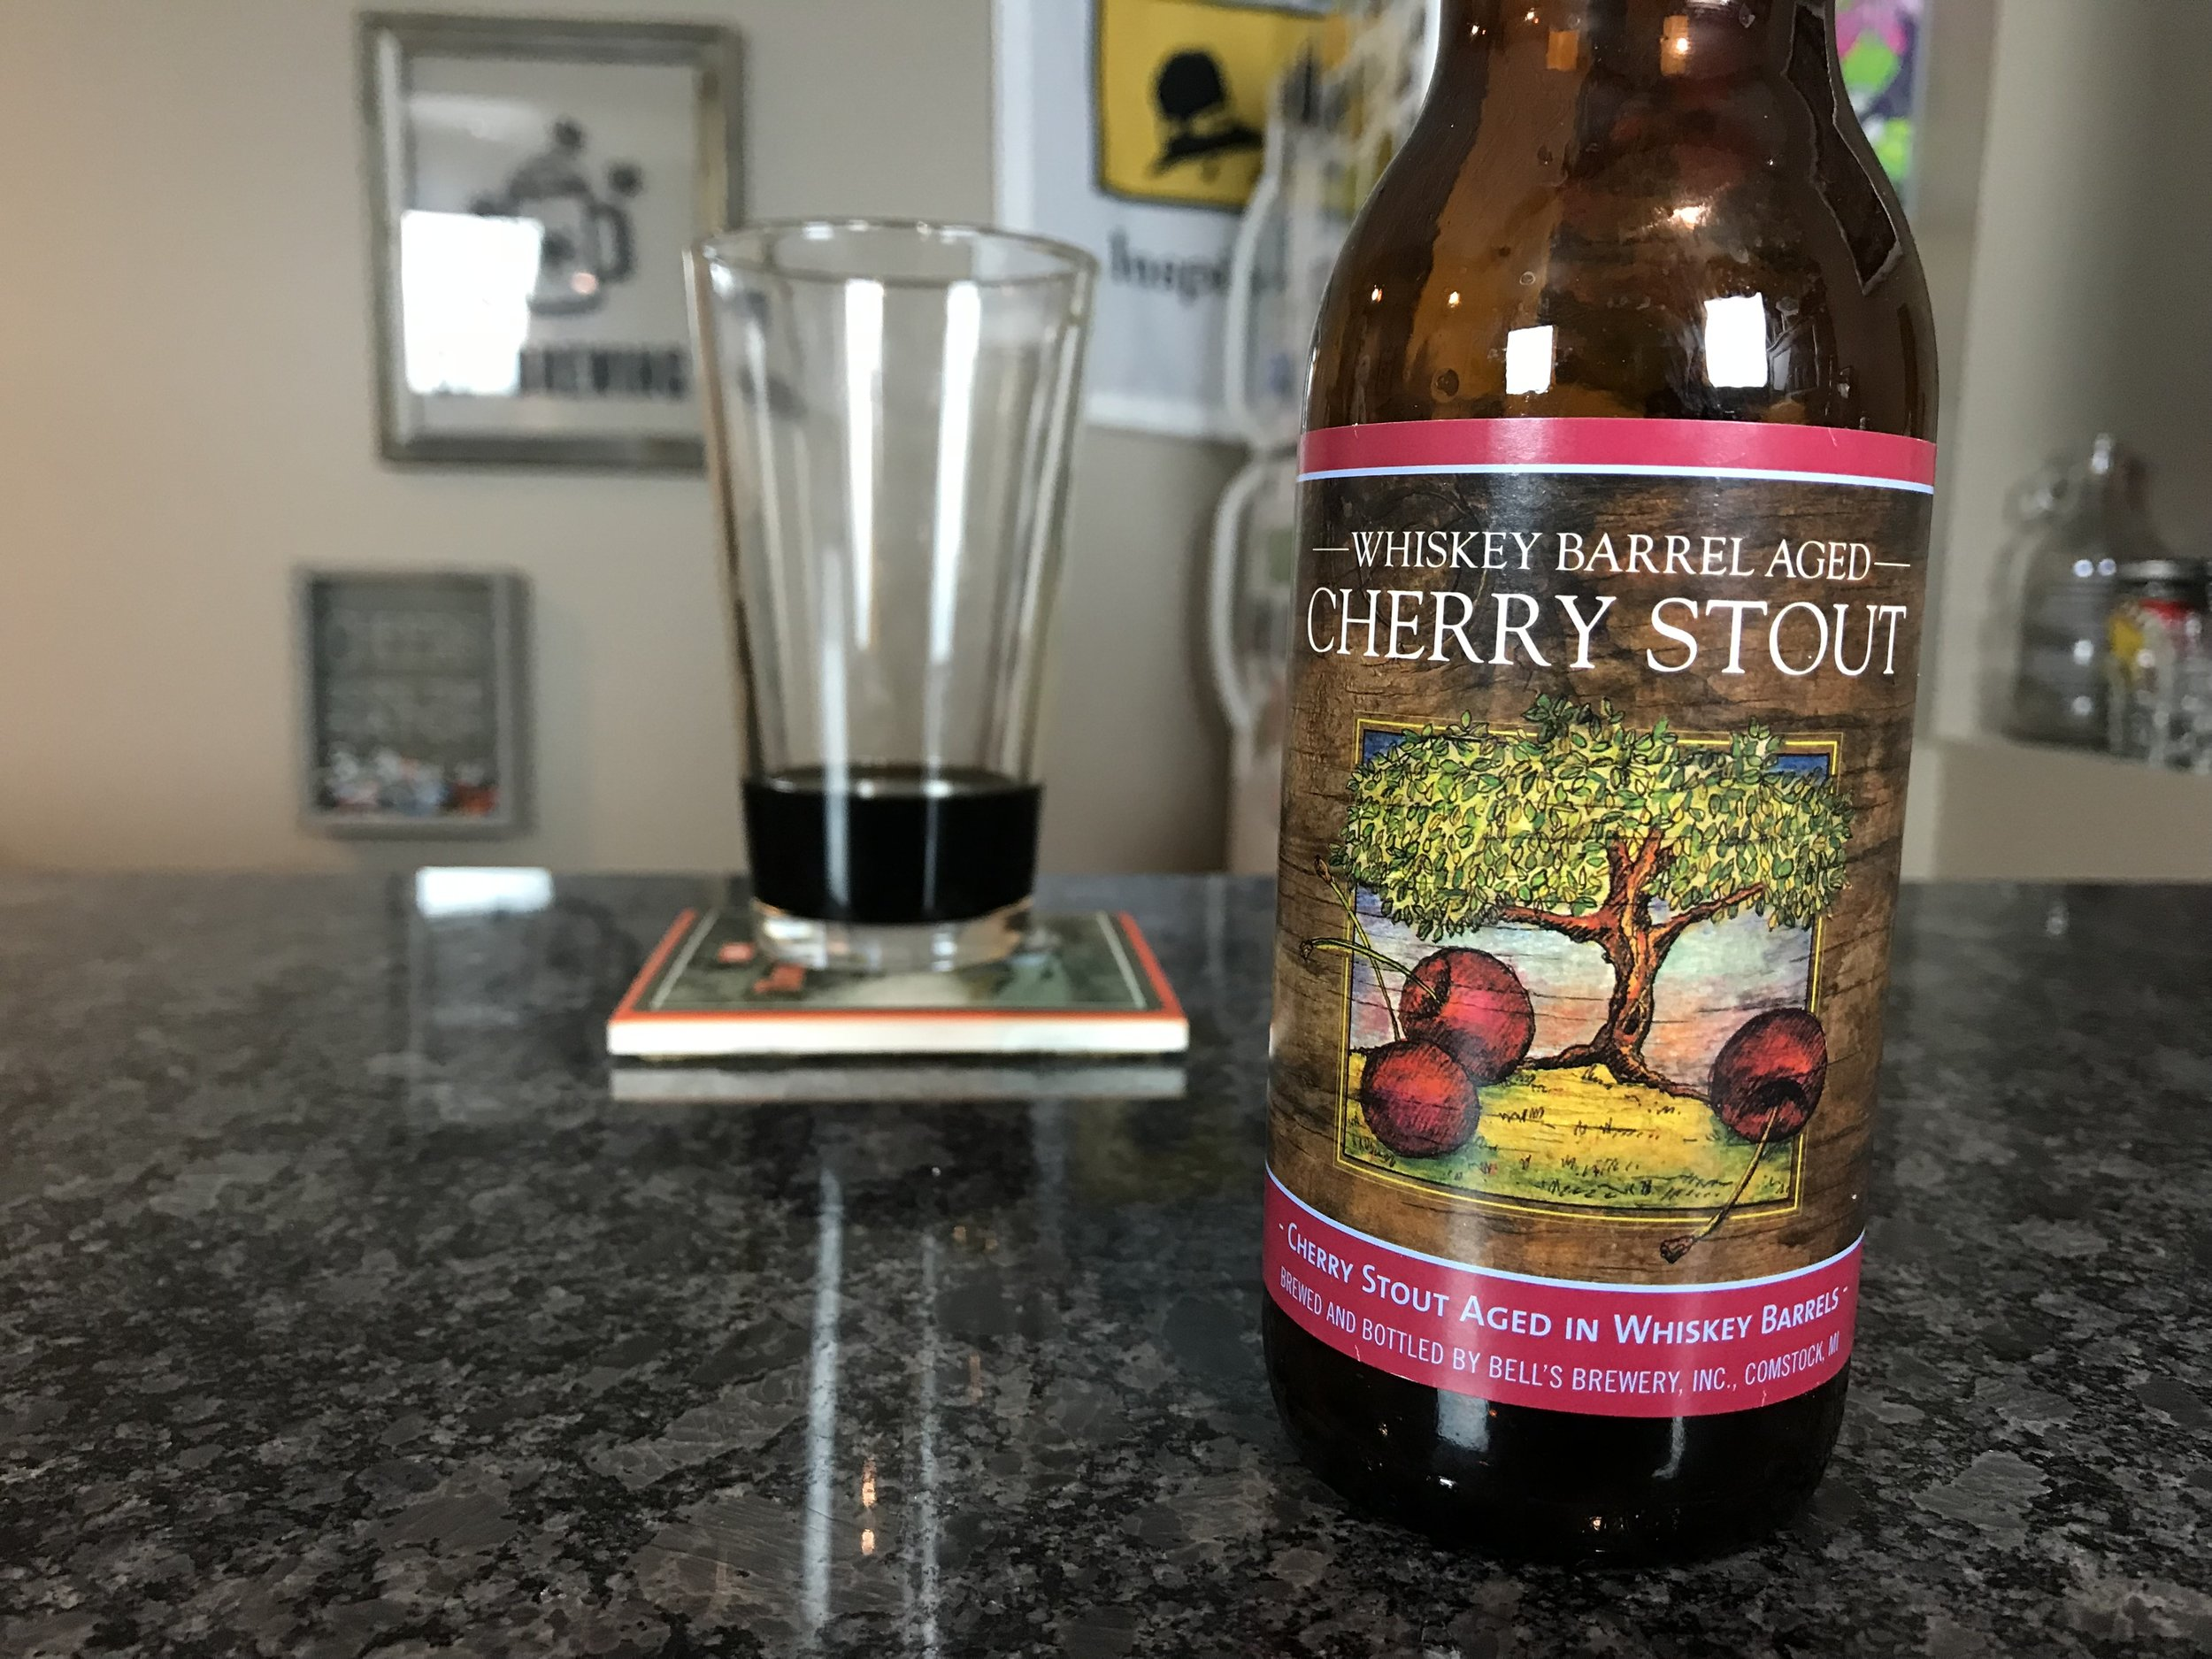 Whiskey Barrel Aged Cherry Stout 9.3% ABV - Want to see the Video review? Click on the image.